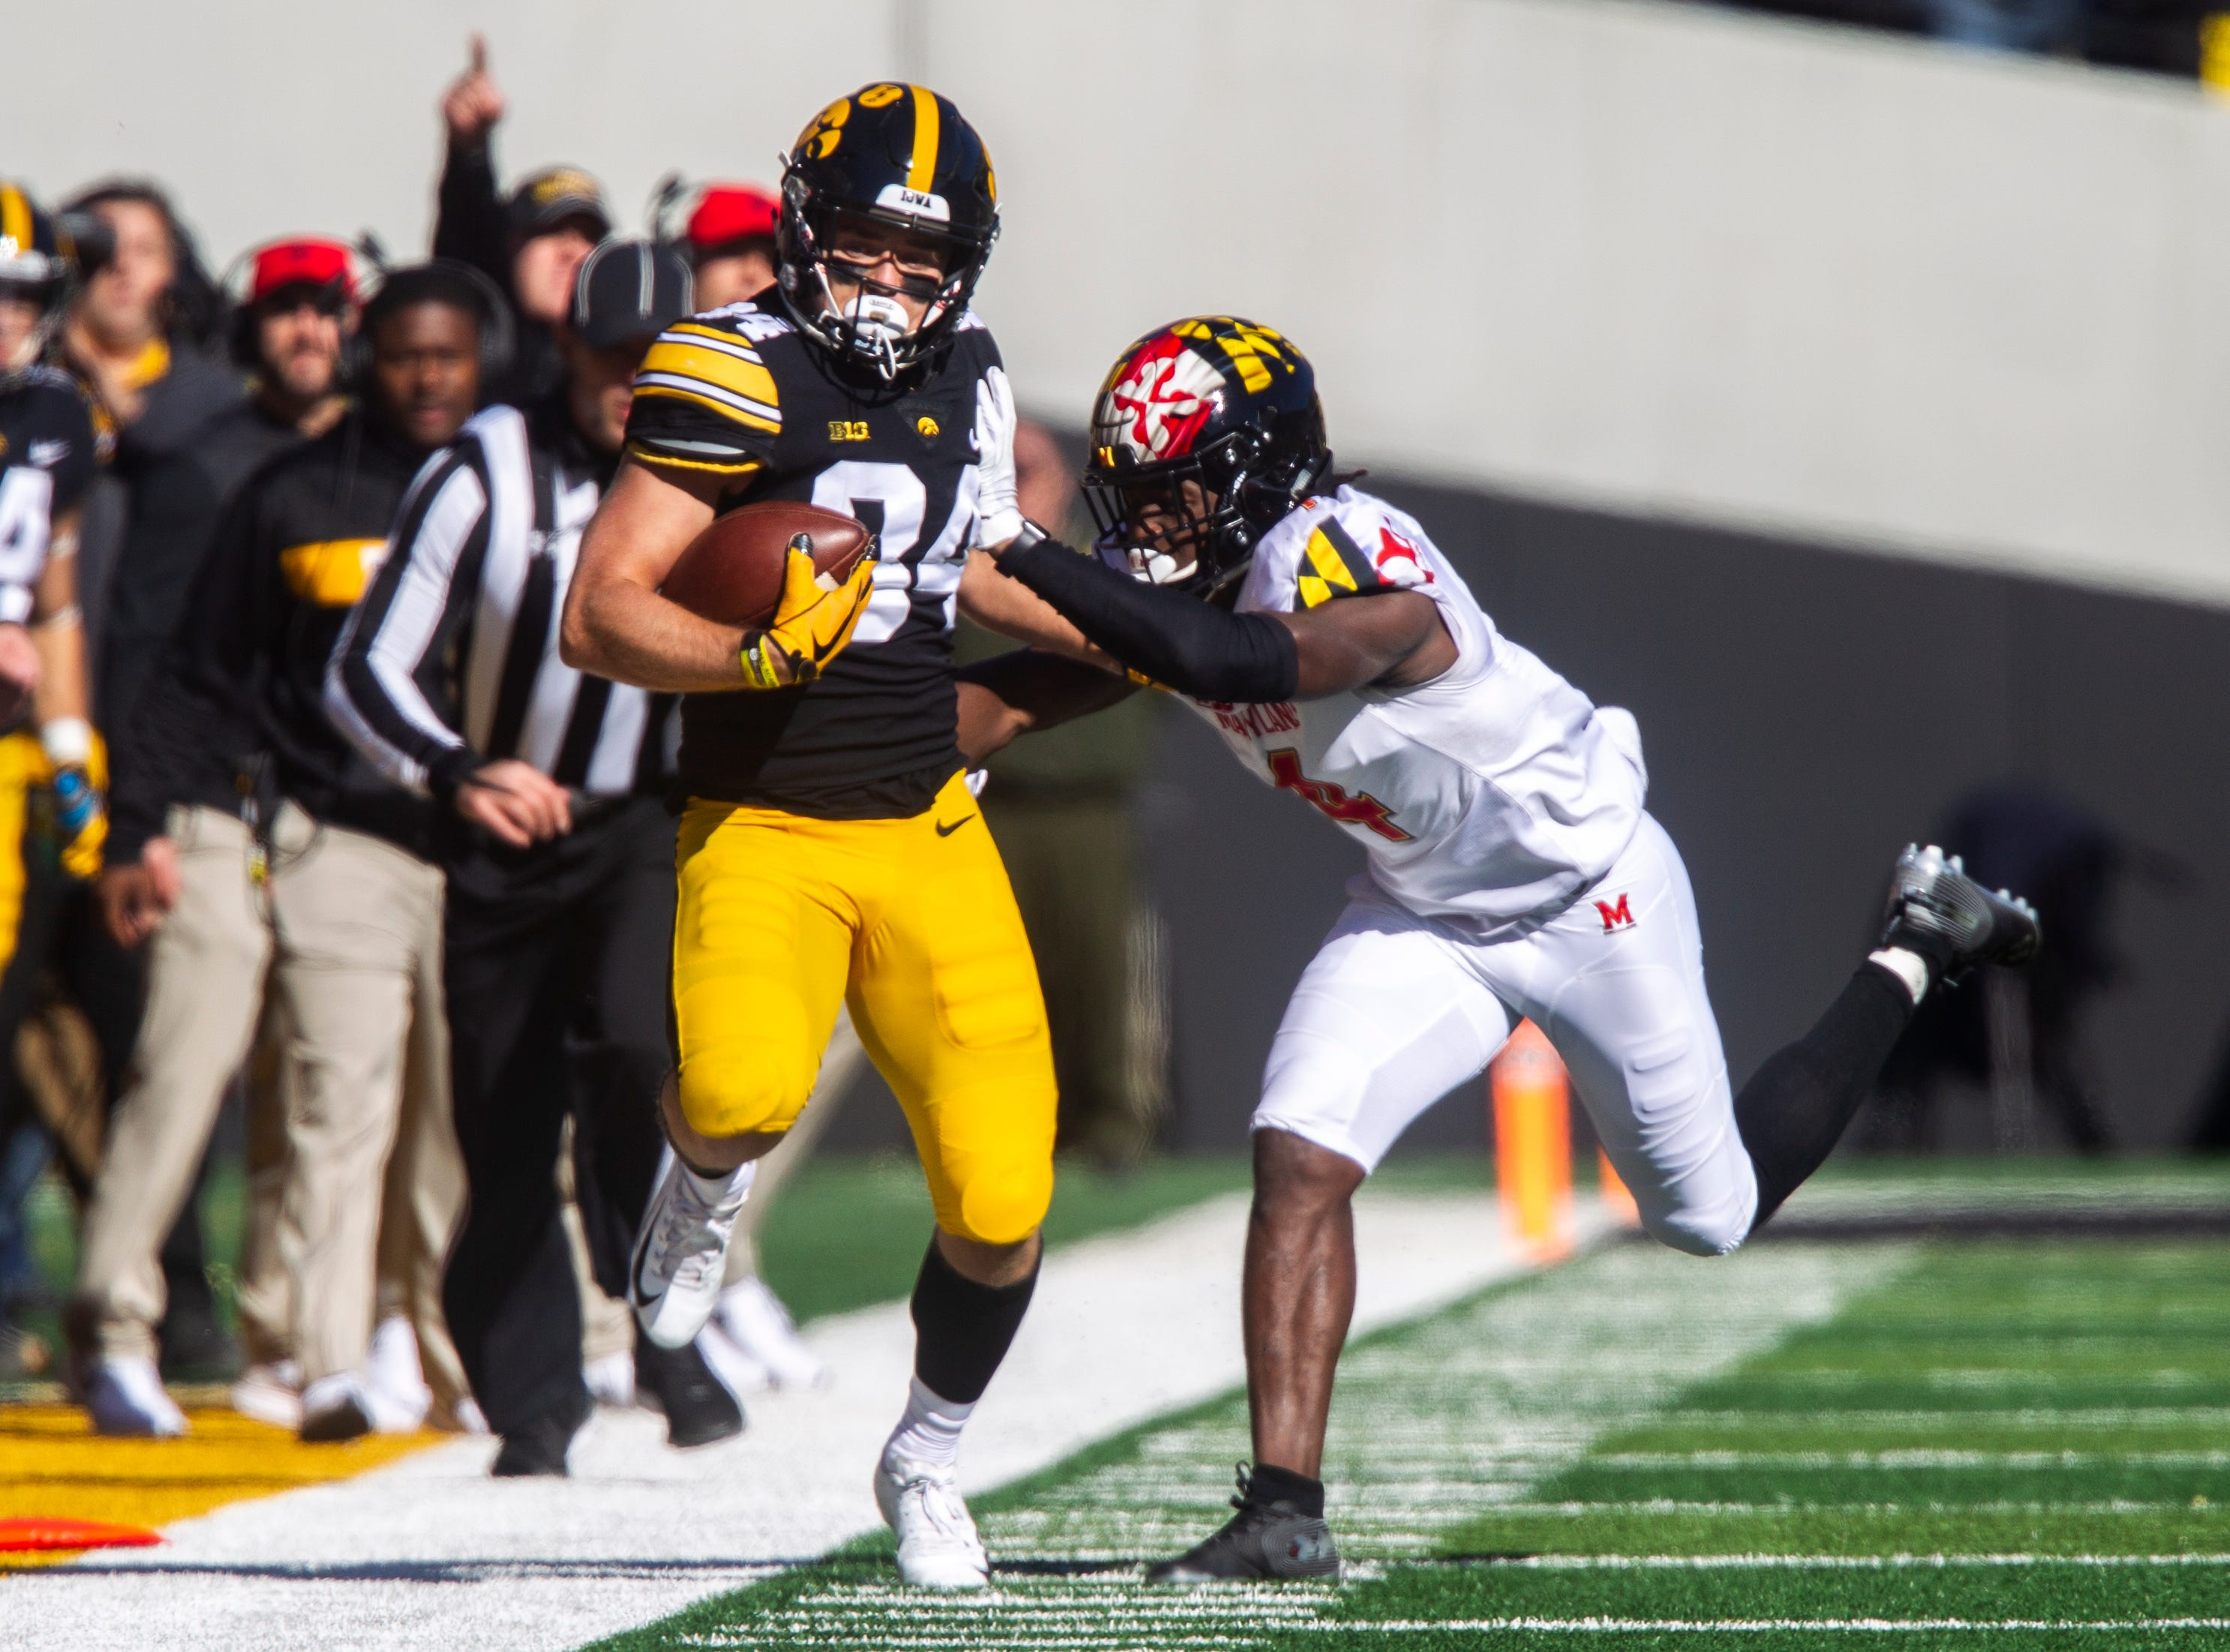 Iowa wide receiver Nick Easley (84) gets pushed out of bounds by Maryland defensive back Darnell Savage, Jr. (4) during an NCAA Big Ten conference football game on Saturday, Oct. 20, 2018, at Kinnick Stadium in Iowa City.